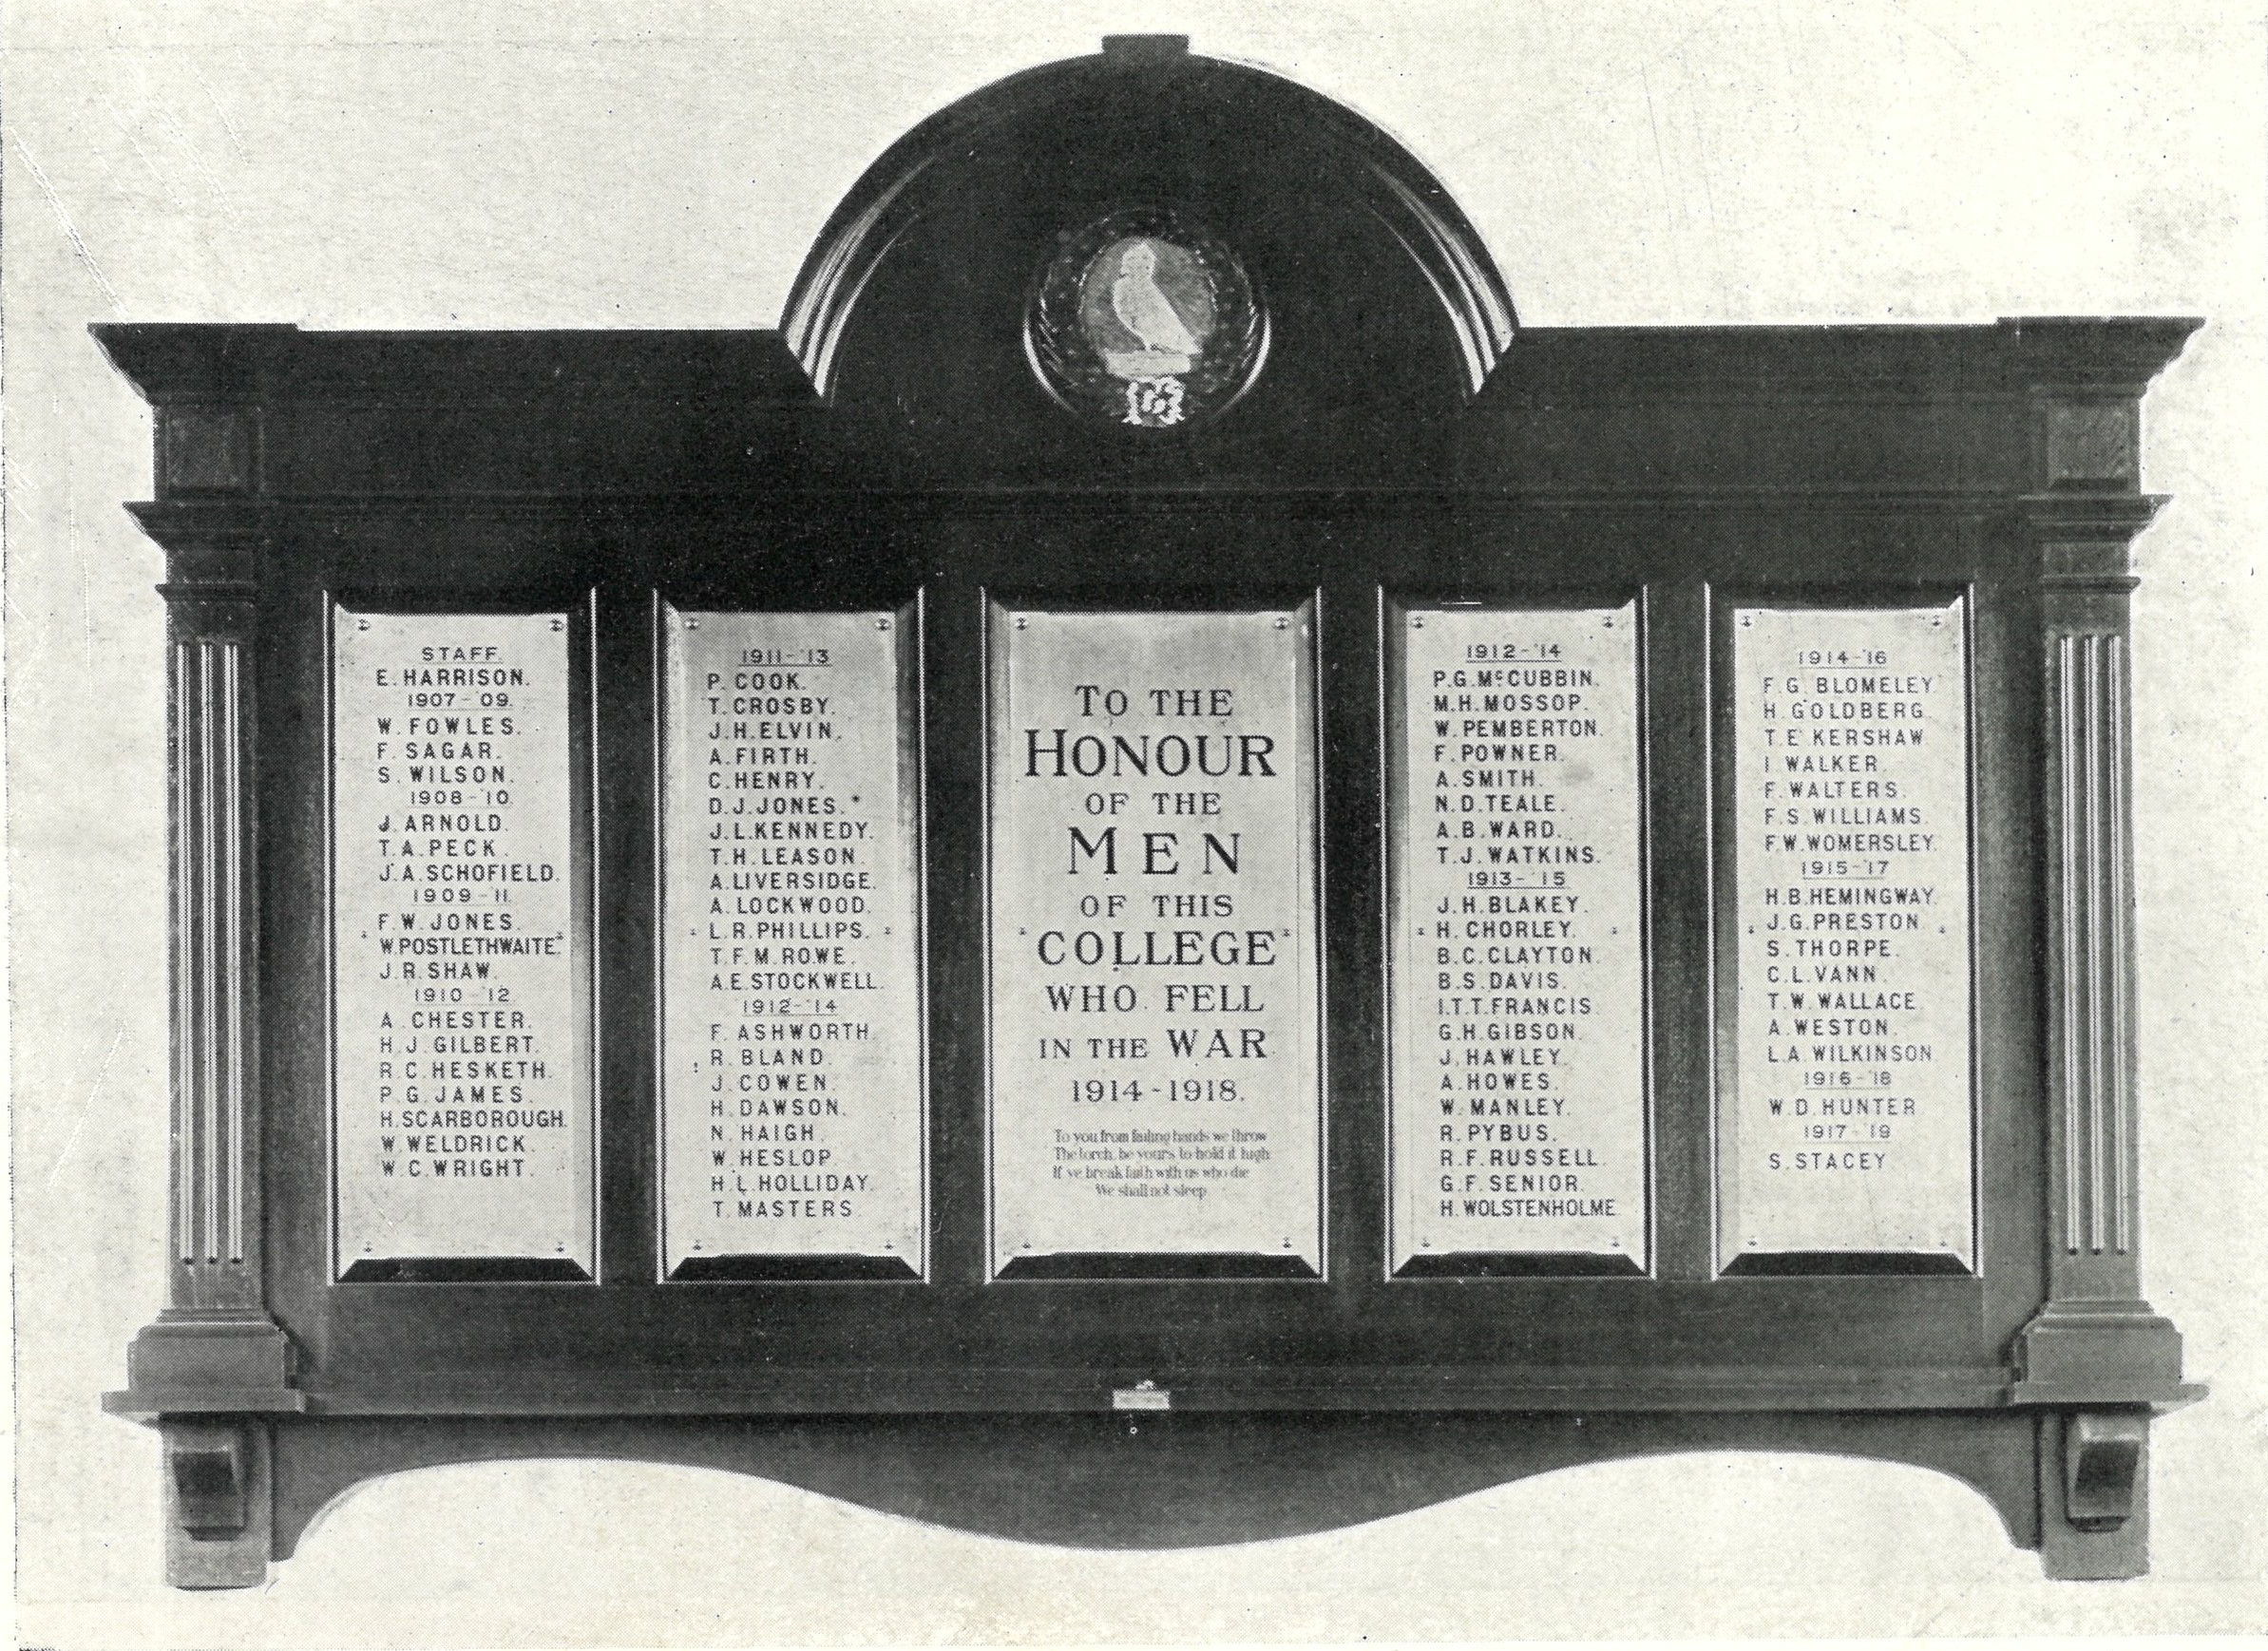 The Original War Memorial